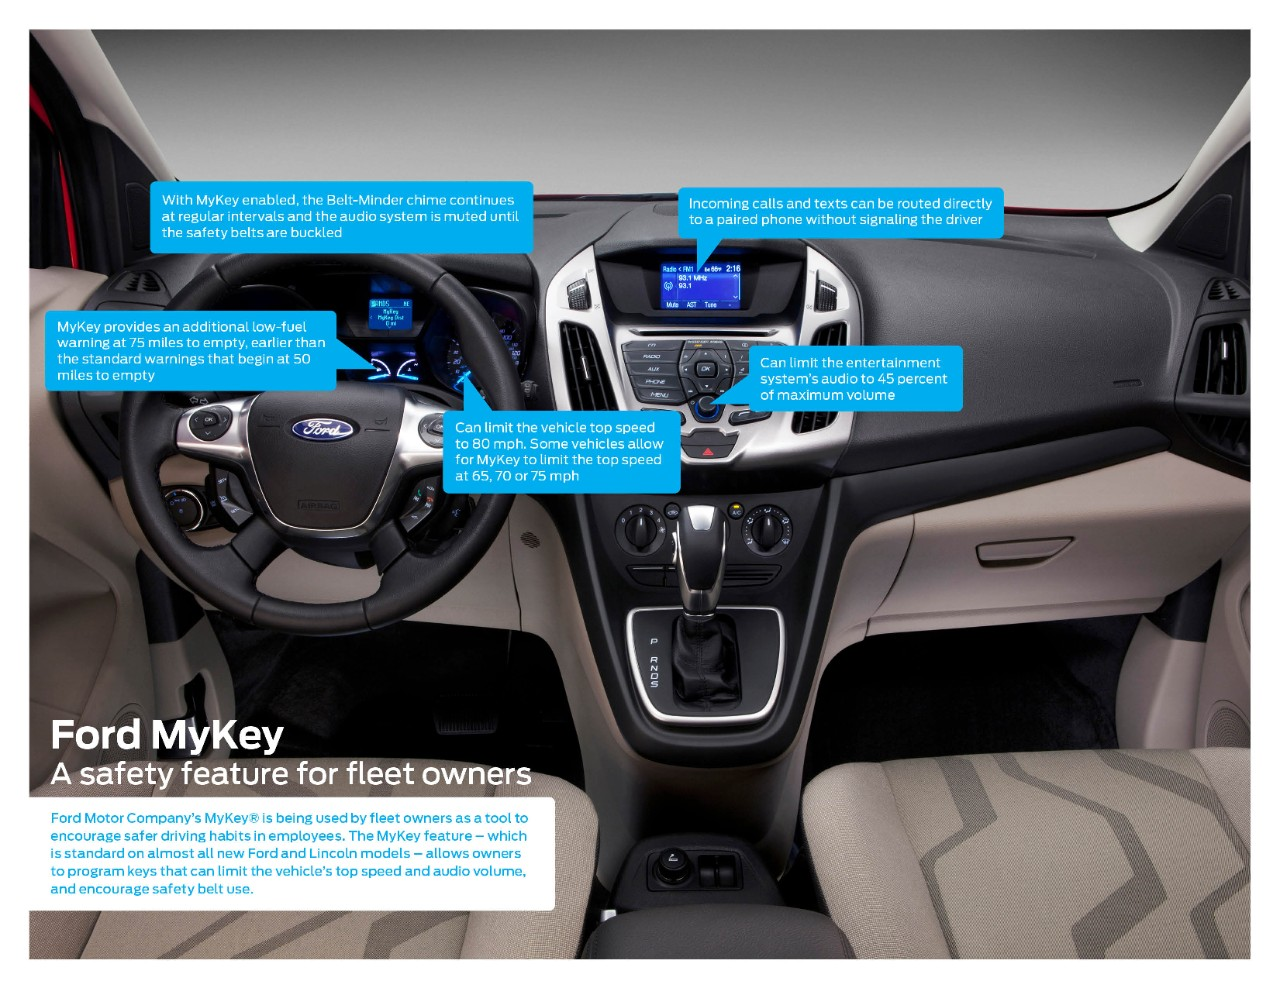 Ford My Key >> Ford Mykey Translates To Safer Fleet Driving The News Wheel